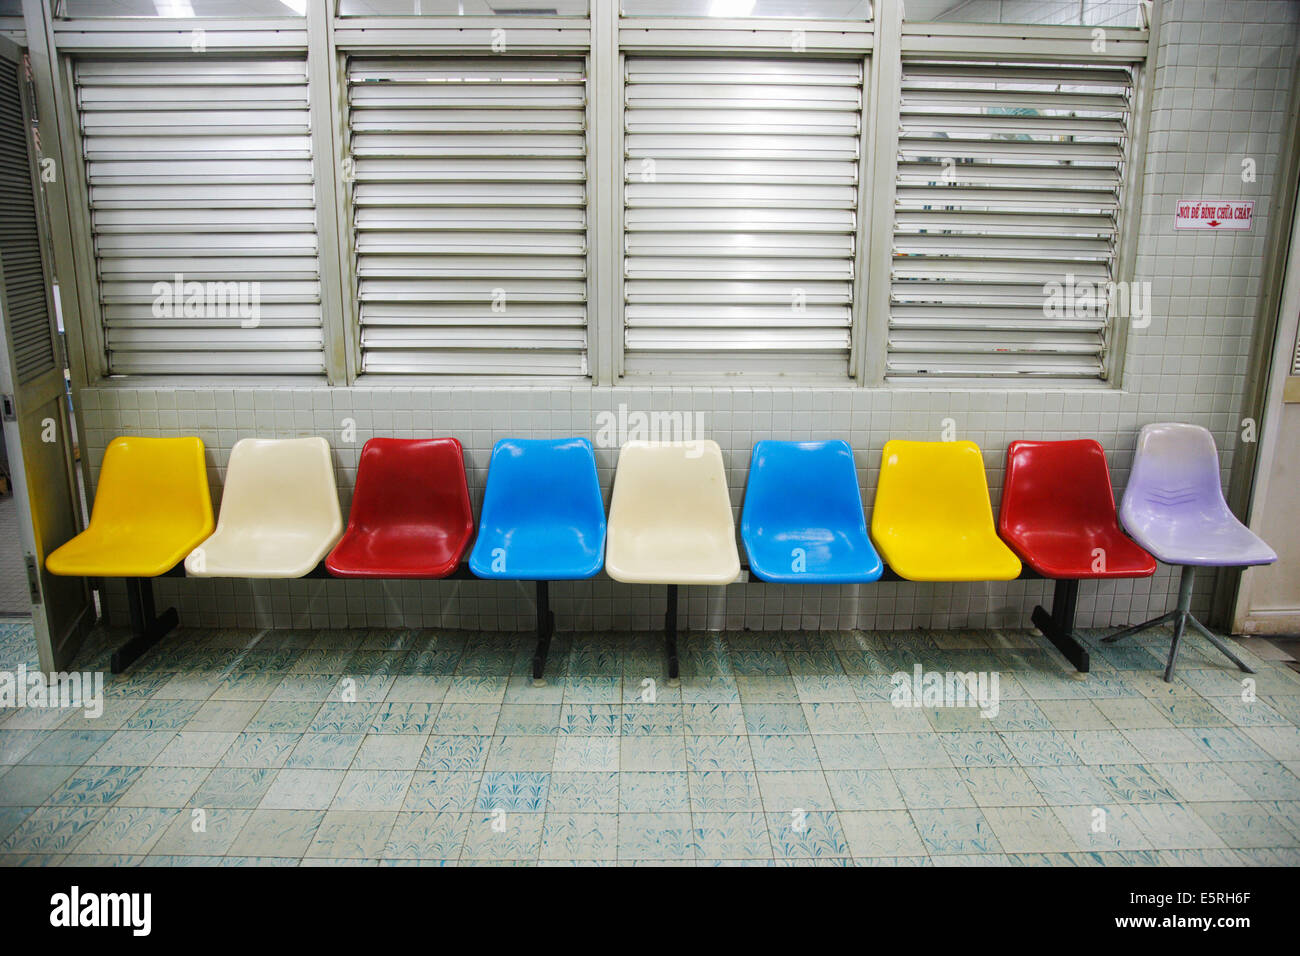 Waiting room - Stock Image